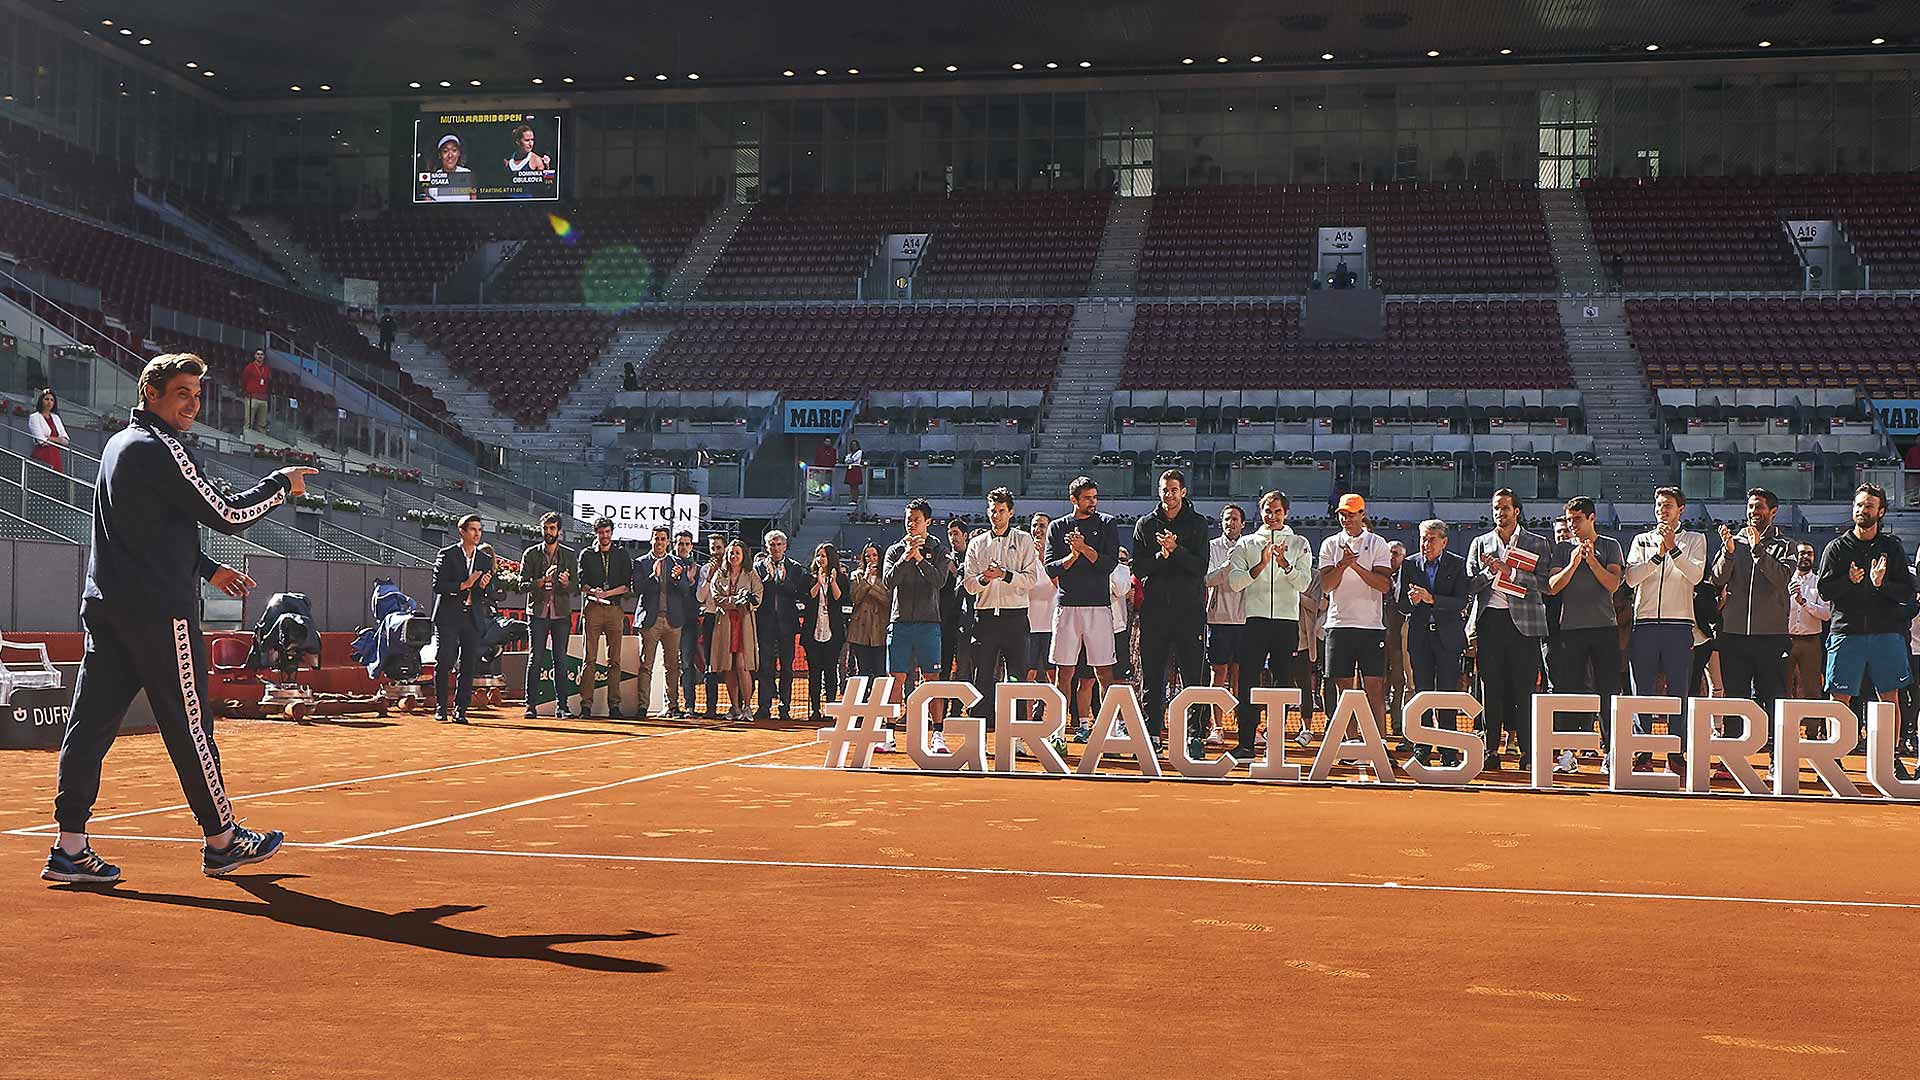 <a href='https://www.atptour.com/en/players/david-ferrer/f401/overview'>David Ferrer</a> walks on court at La Caja Magica for a special ceremony in his honour ahead of his final tournament in Madrid